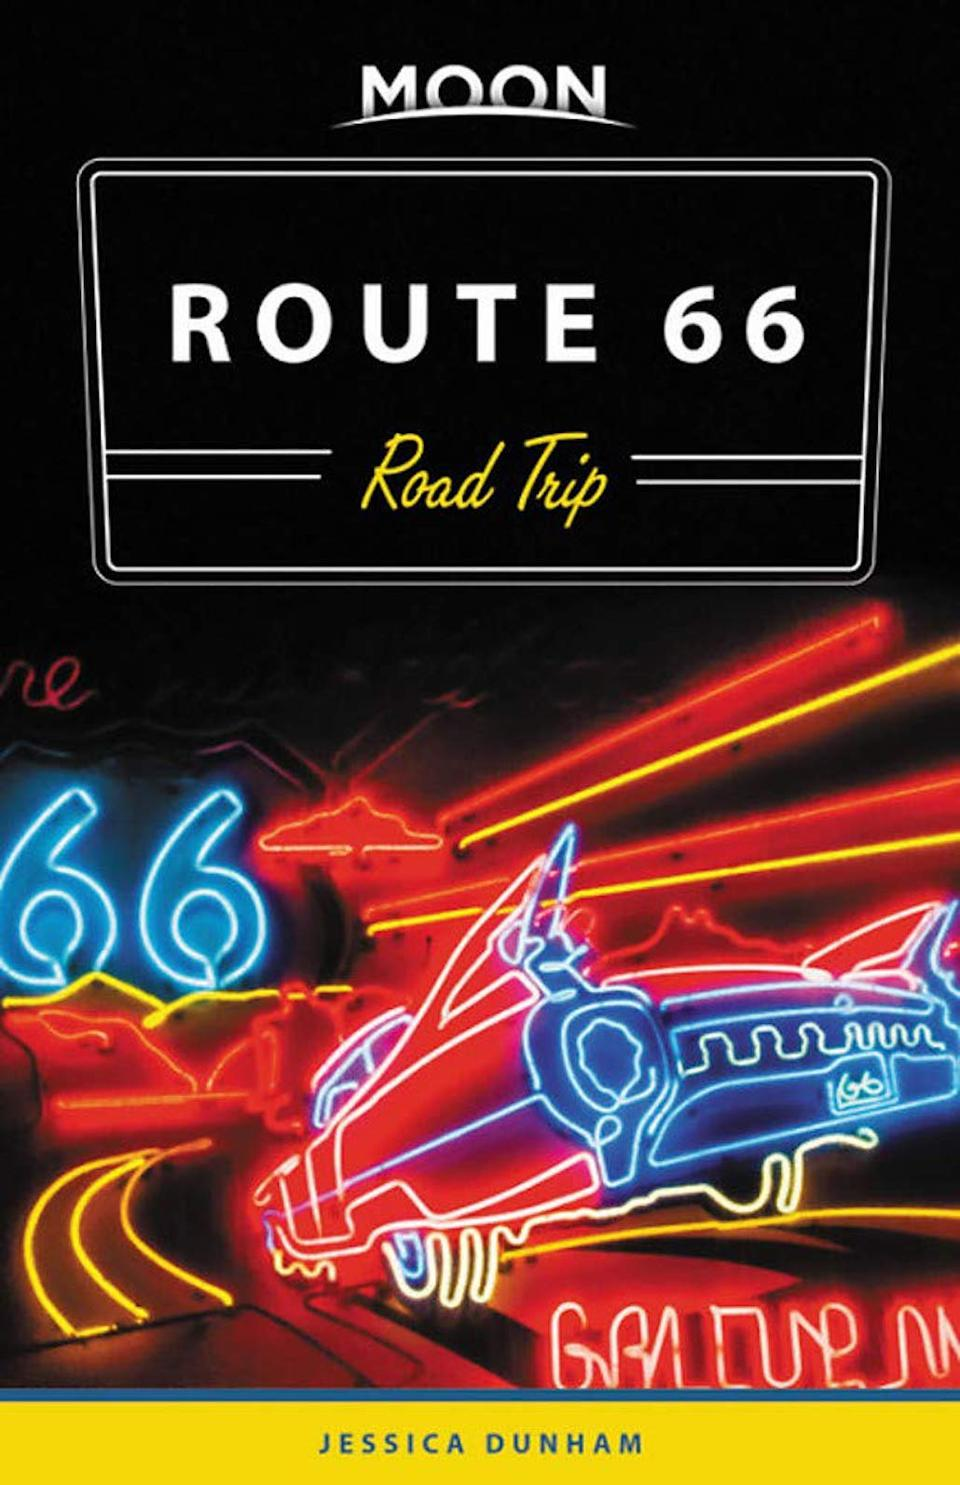 Route 66 Road Trip by Jessica Dunham